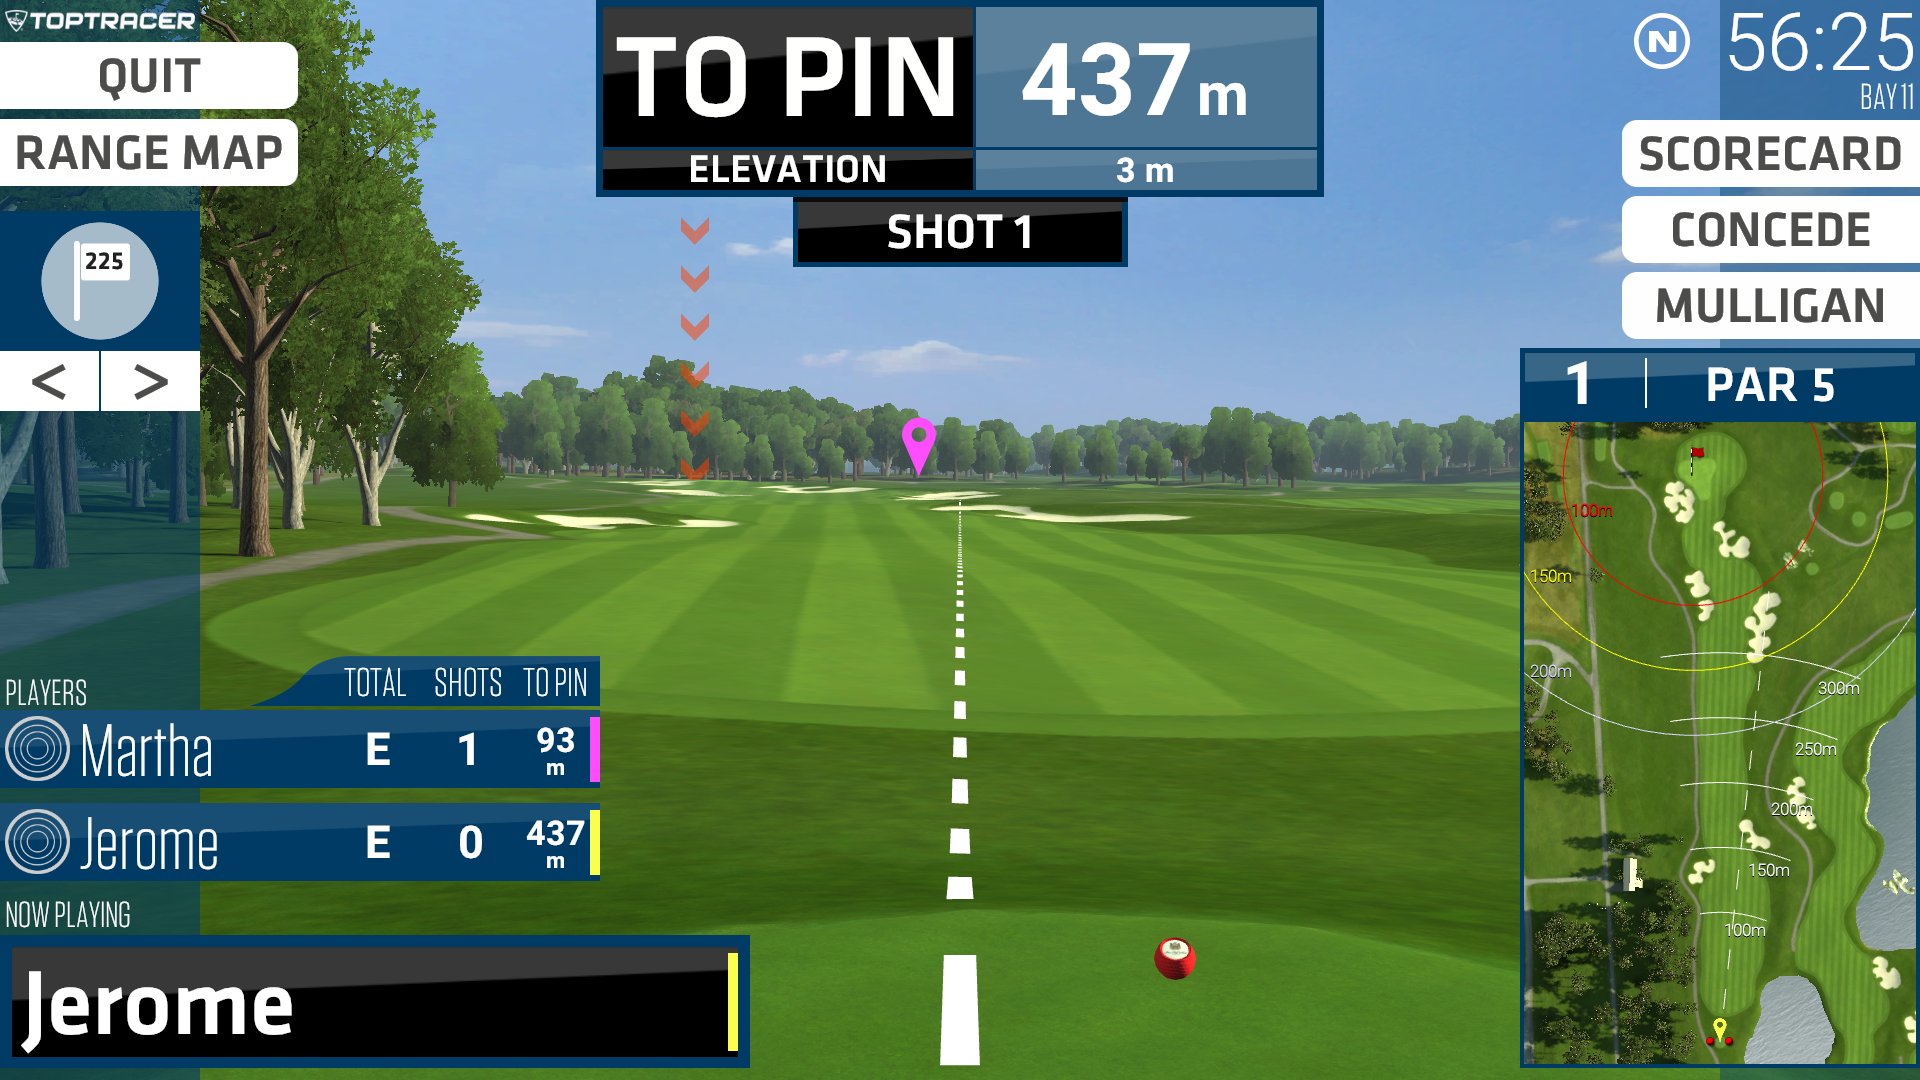 Play a round of golf using Top Tracer Virtual Golf